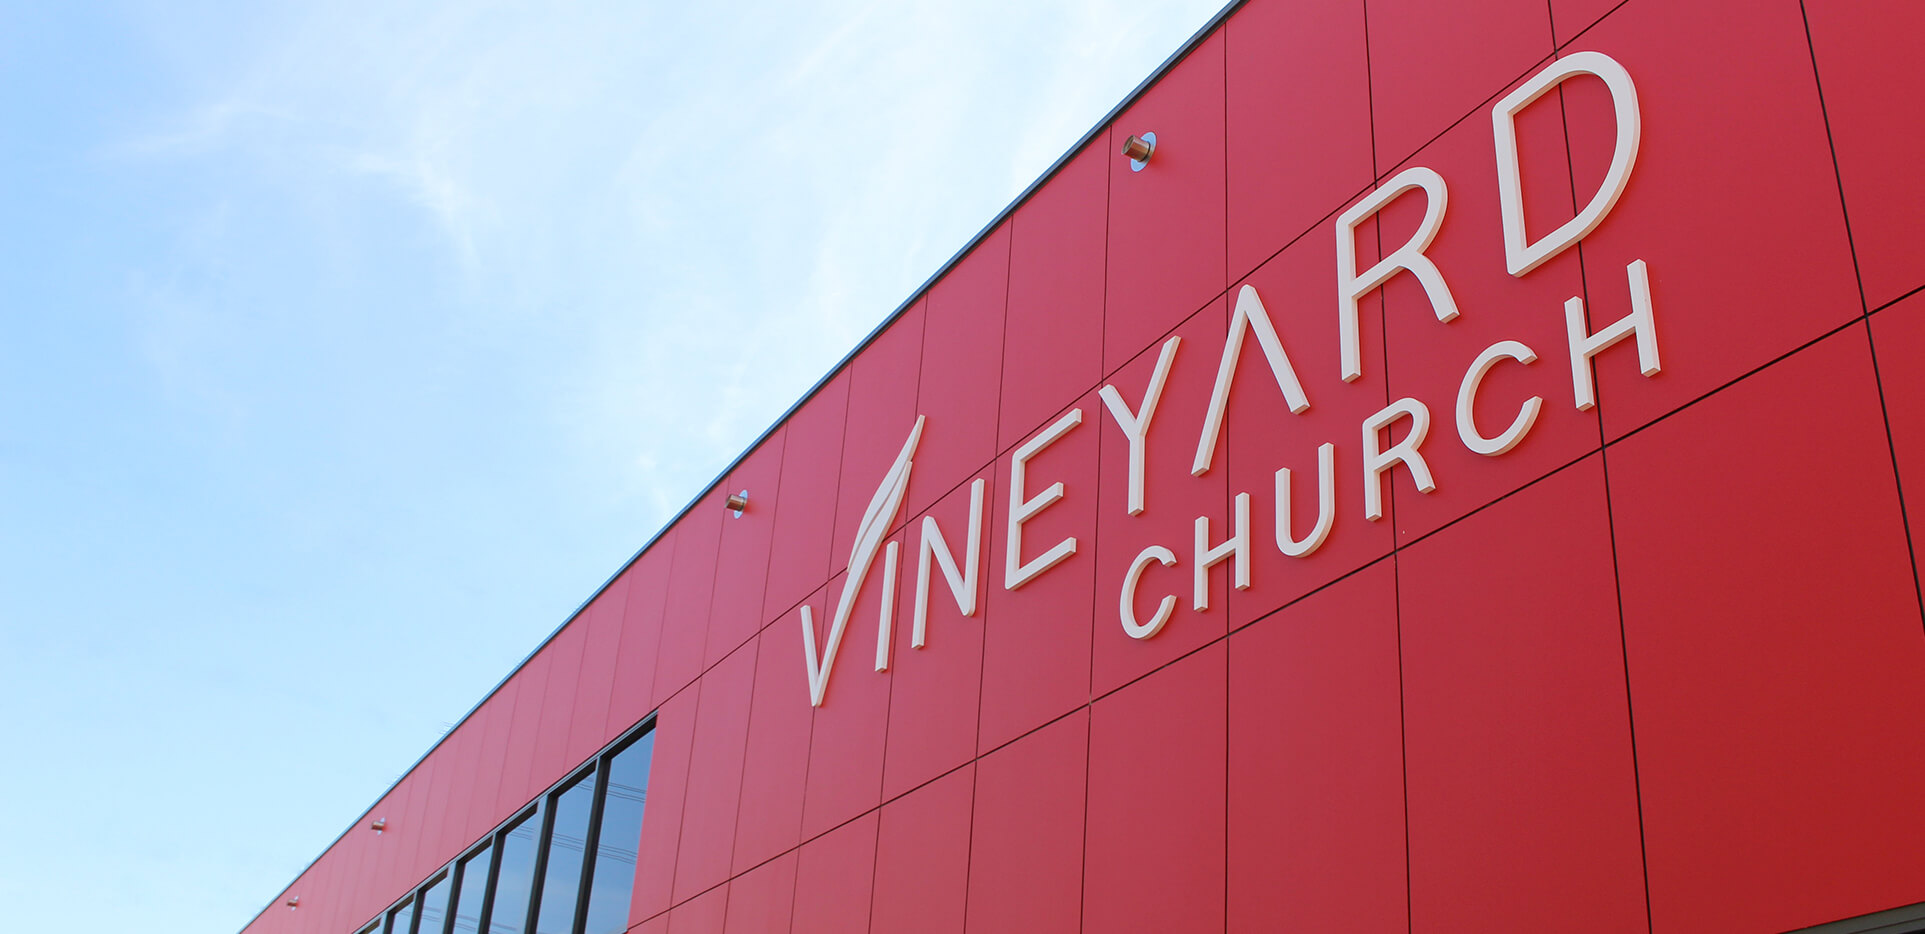 vineyard church